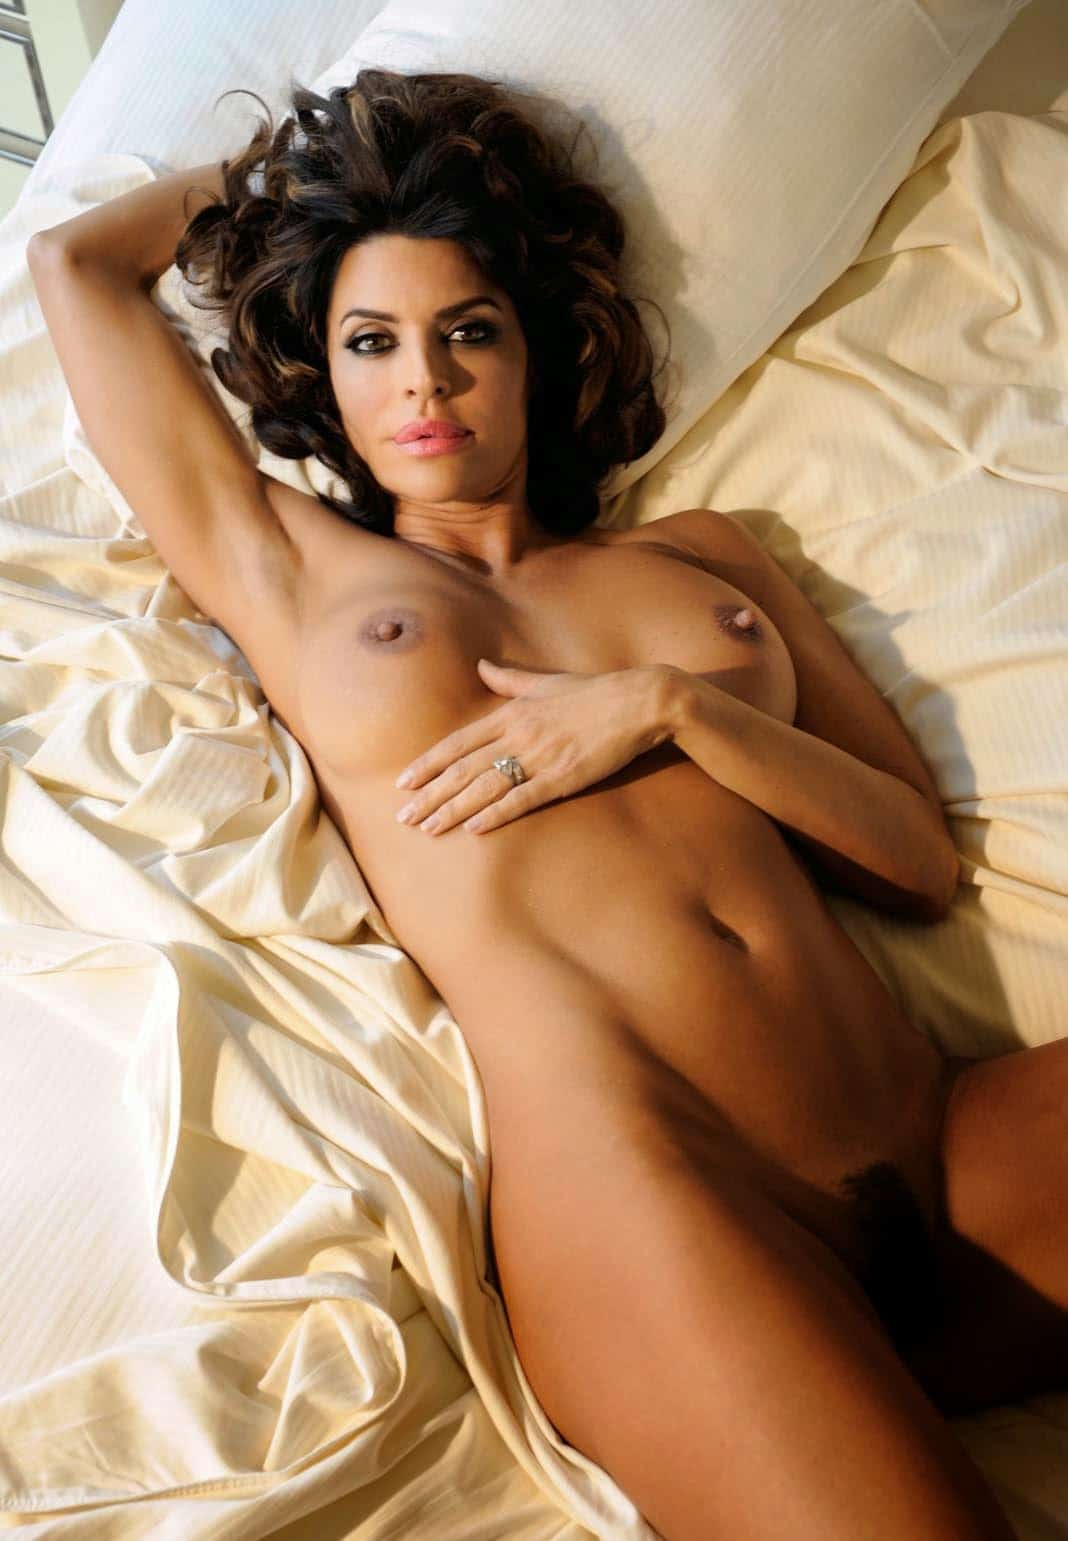 nude photos of lisa rinna